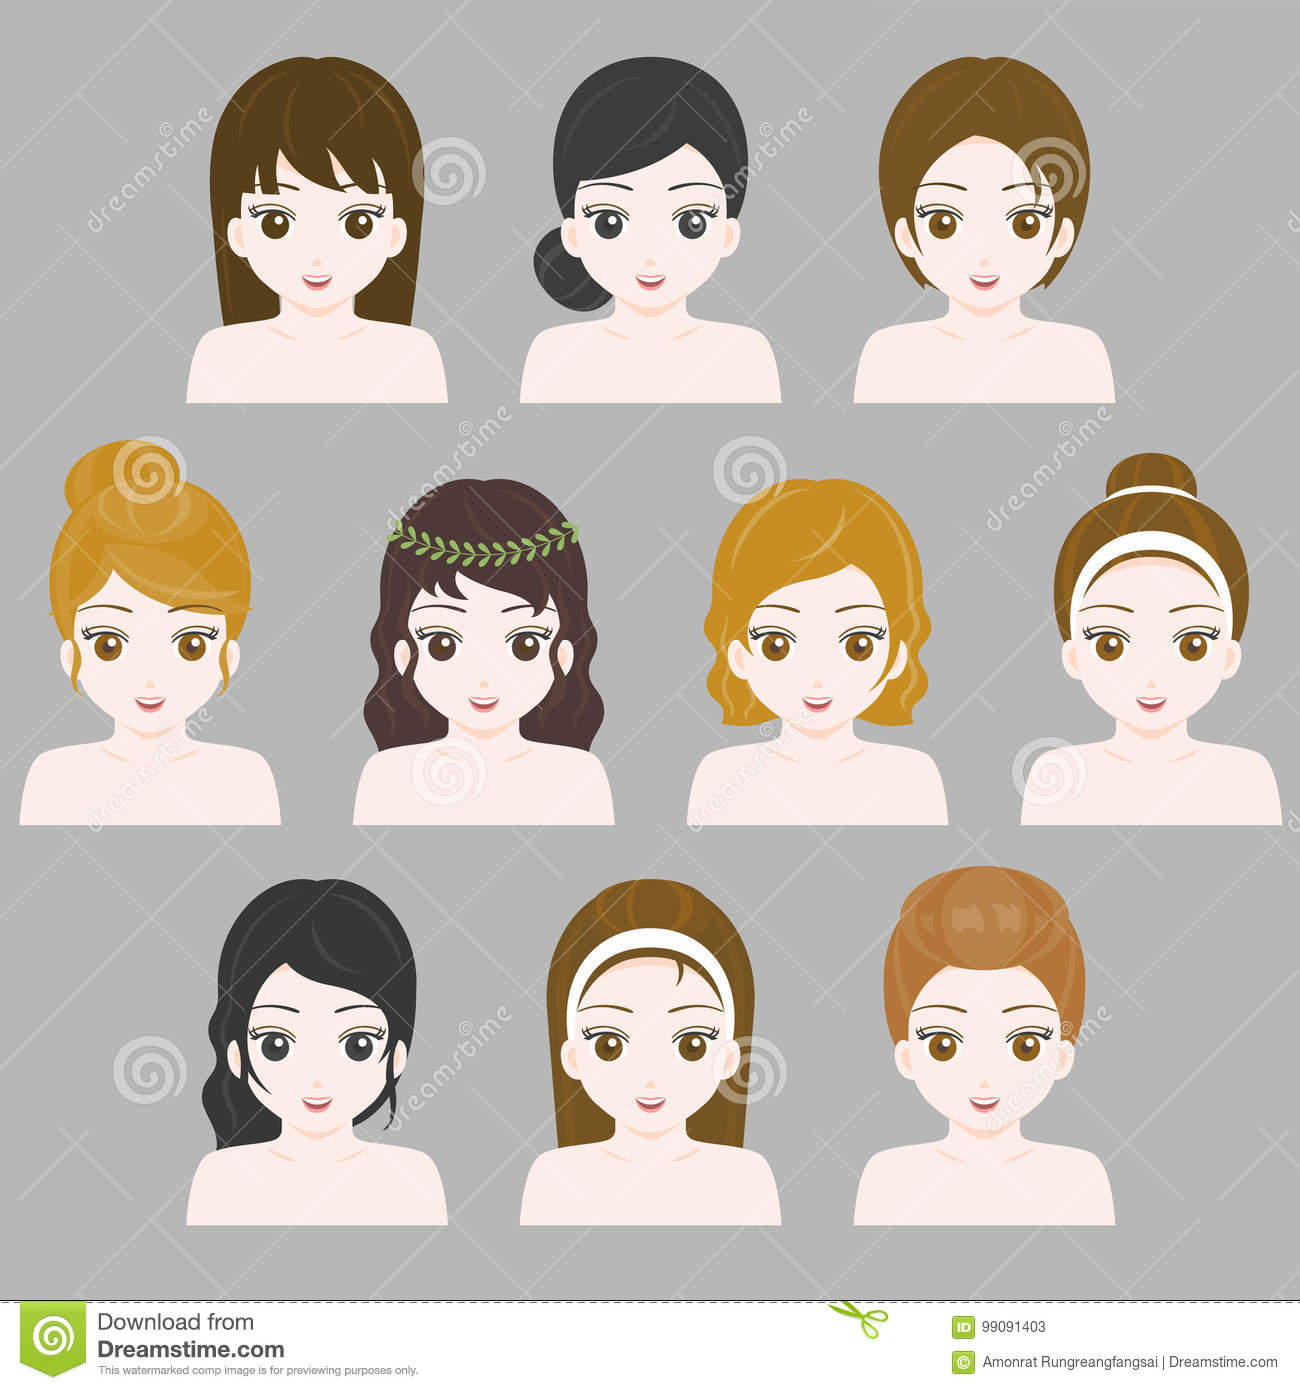 Girl Hair Style Collection Flat Design For Using In Game Stock Vector Illustration Of School Bohemian 99091403